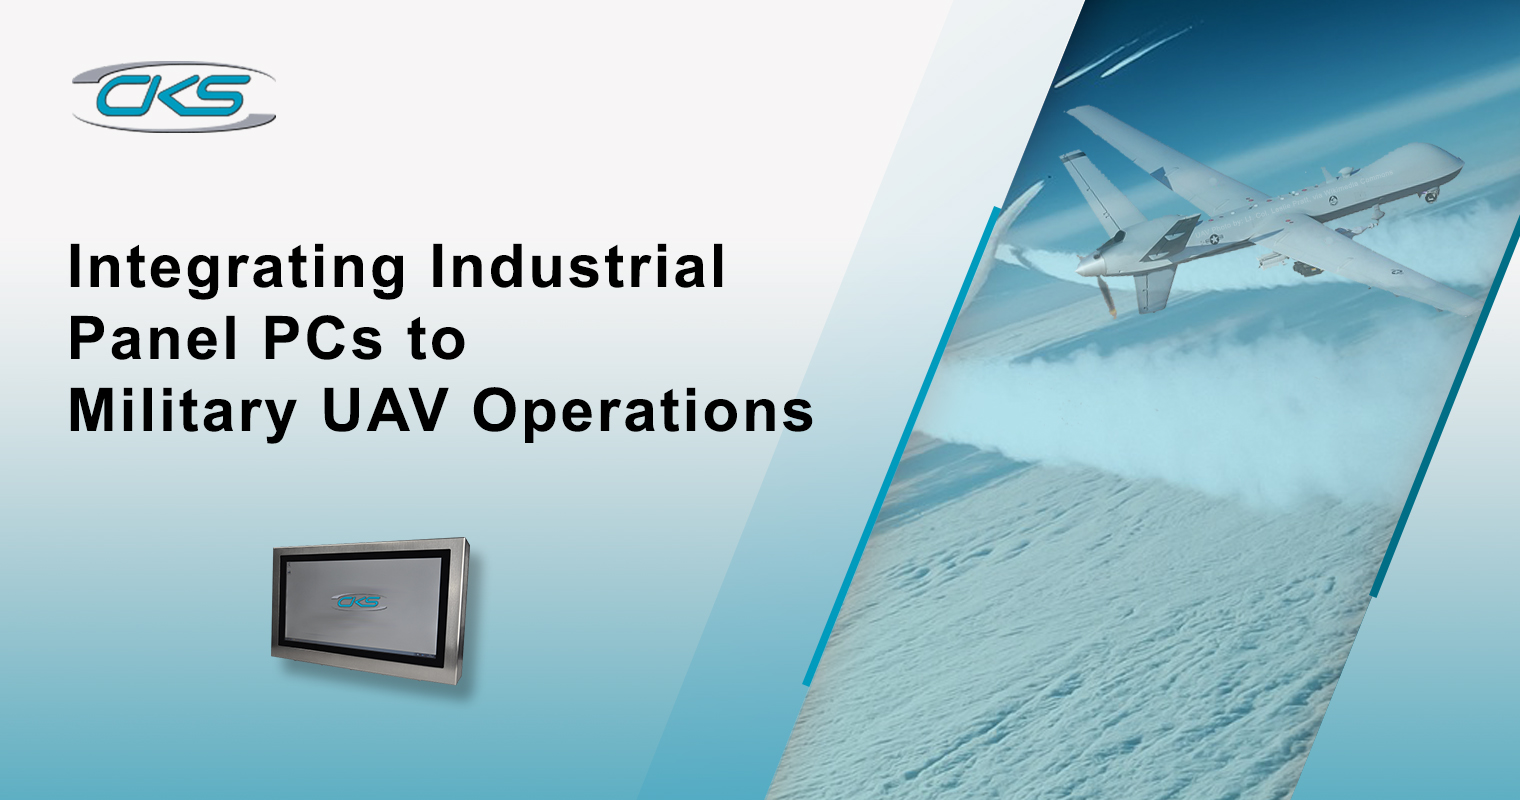 Integrating Industrial Panel PCs to Military UAV Operations